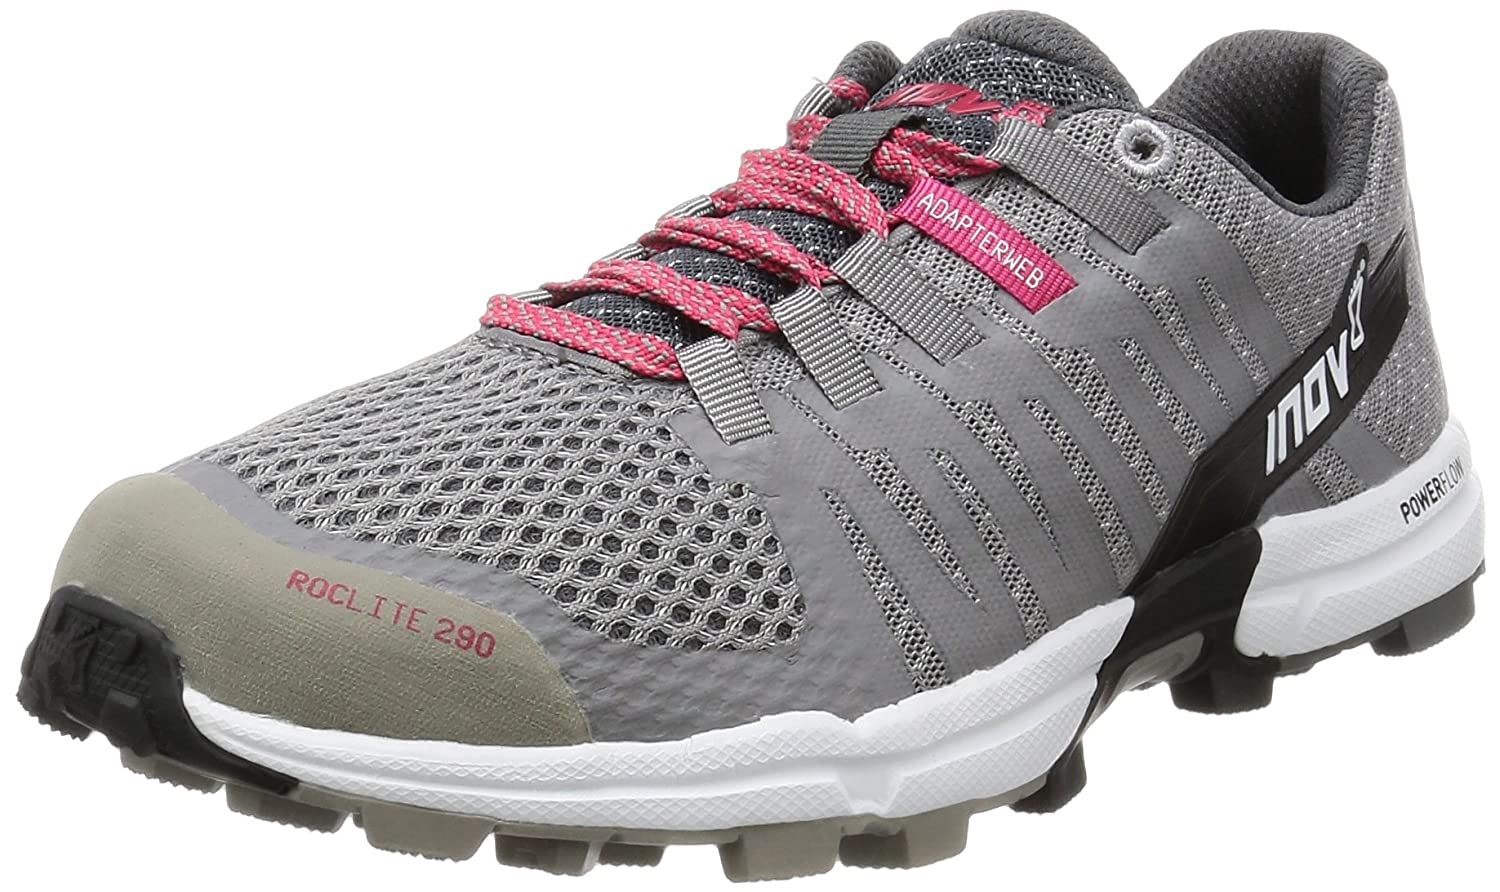 Inov-8 Women's Roclite 290 Trail Runner B01G50LW6O 8.5 D US|Grey/Pink/White